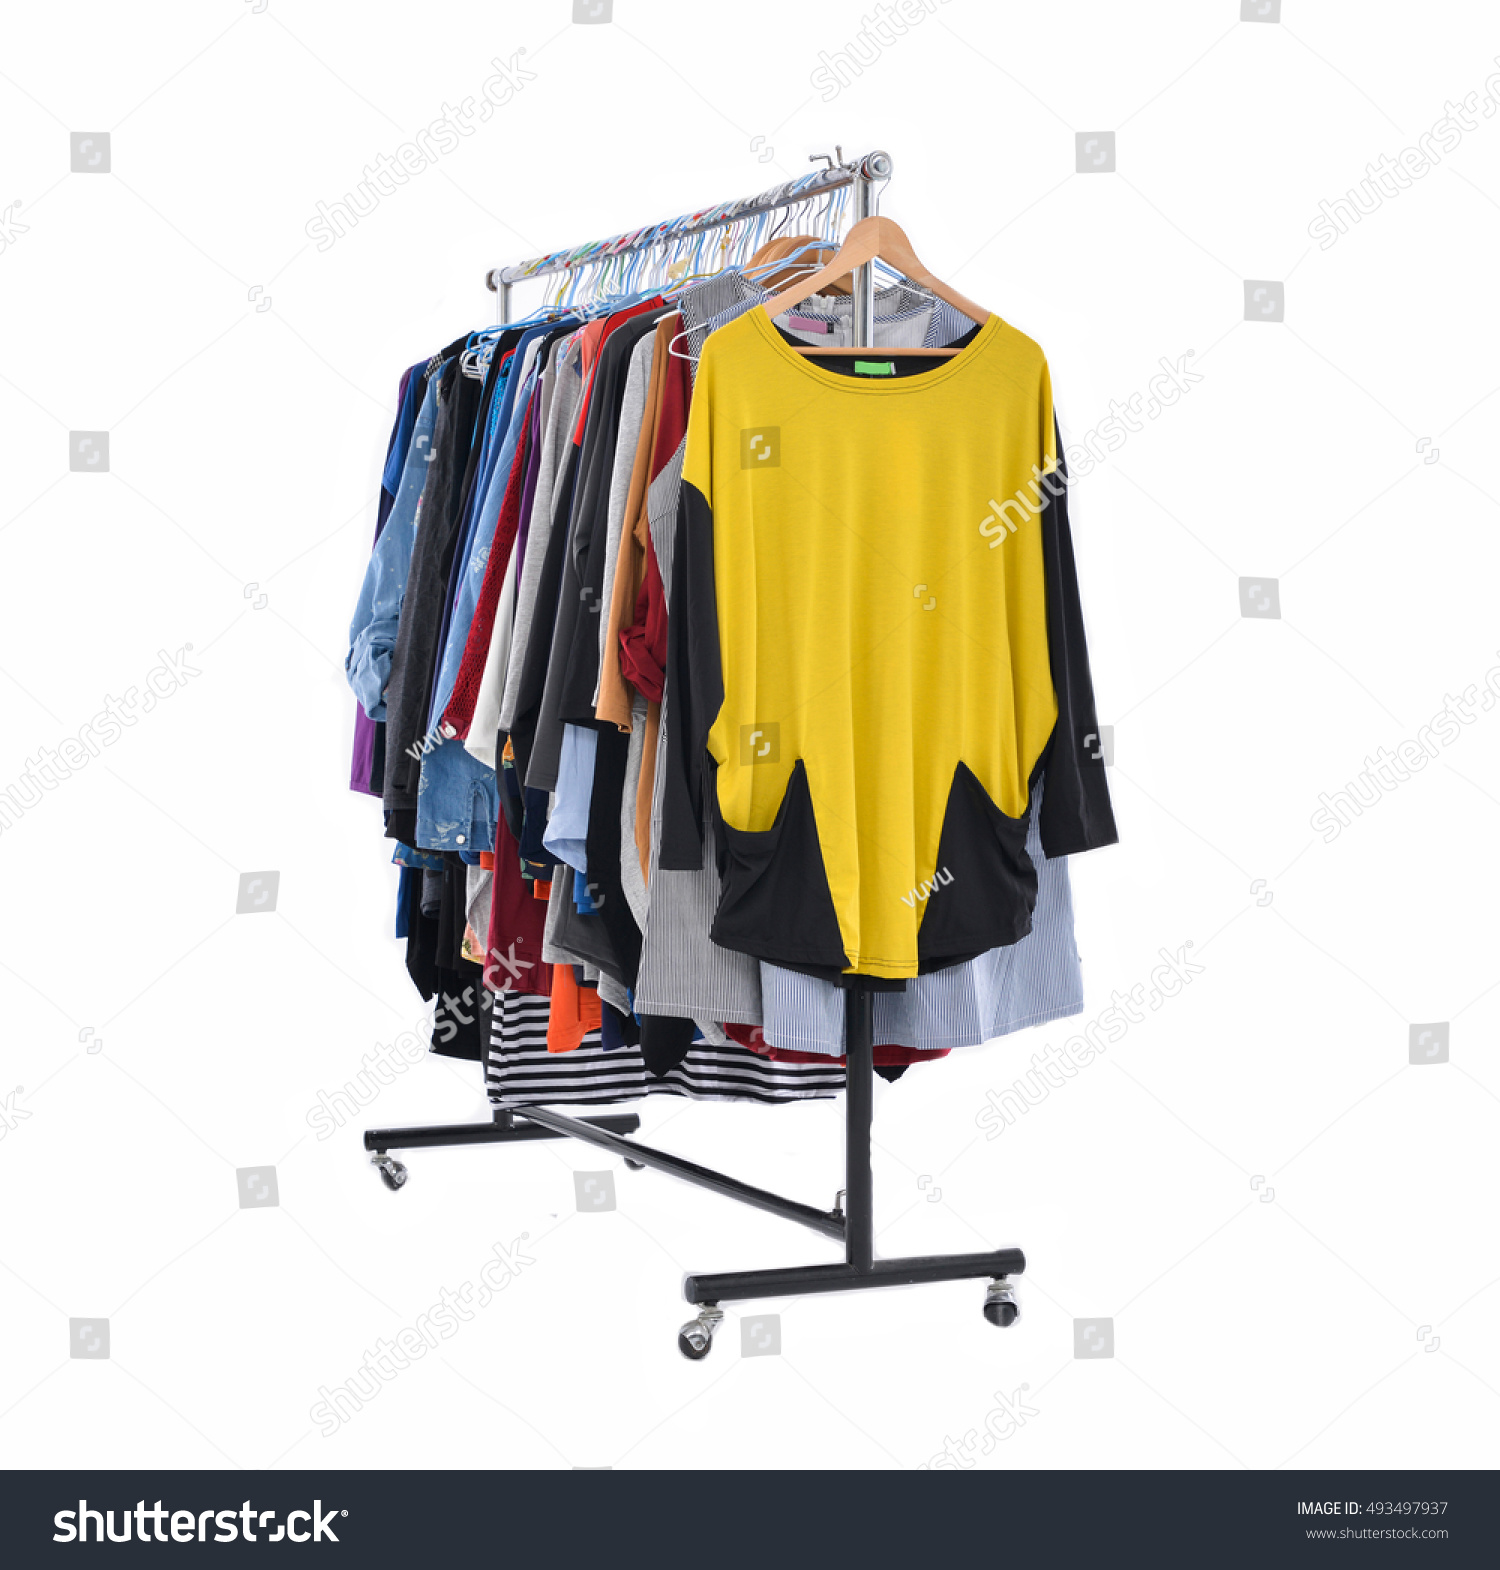 lightly in rack a hanging dorm even treading room laundry dry out clothes to